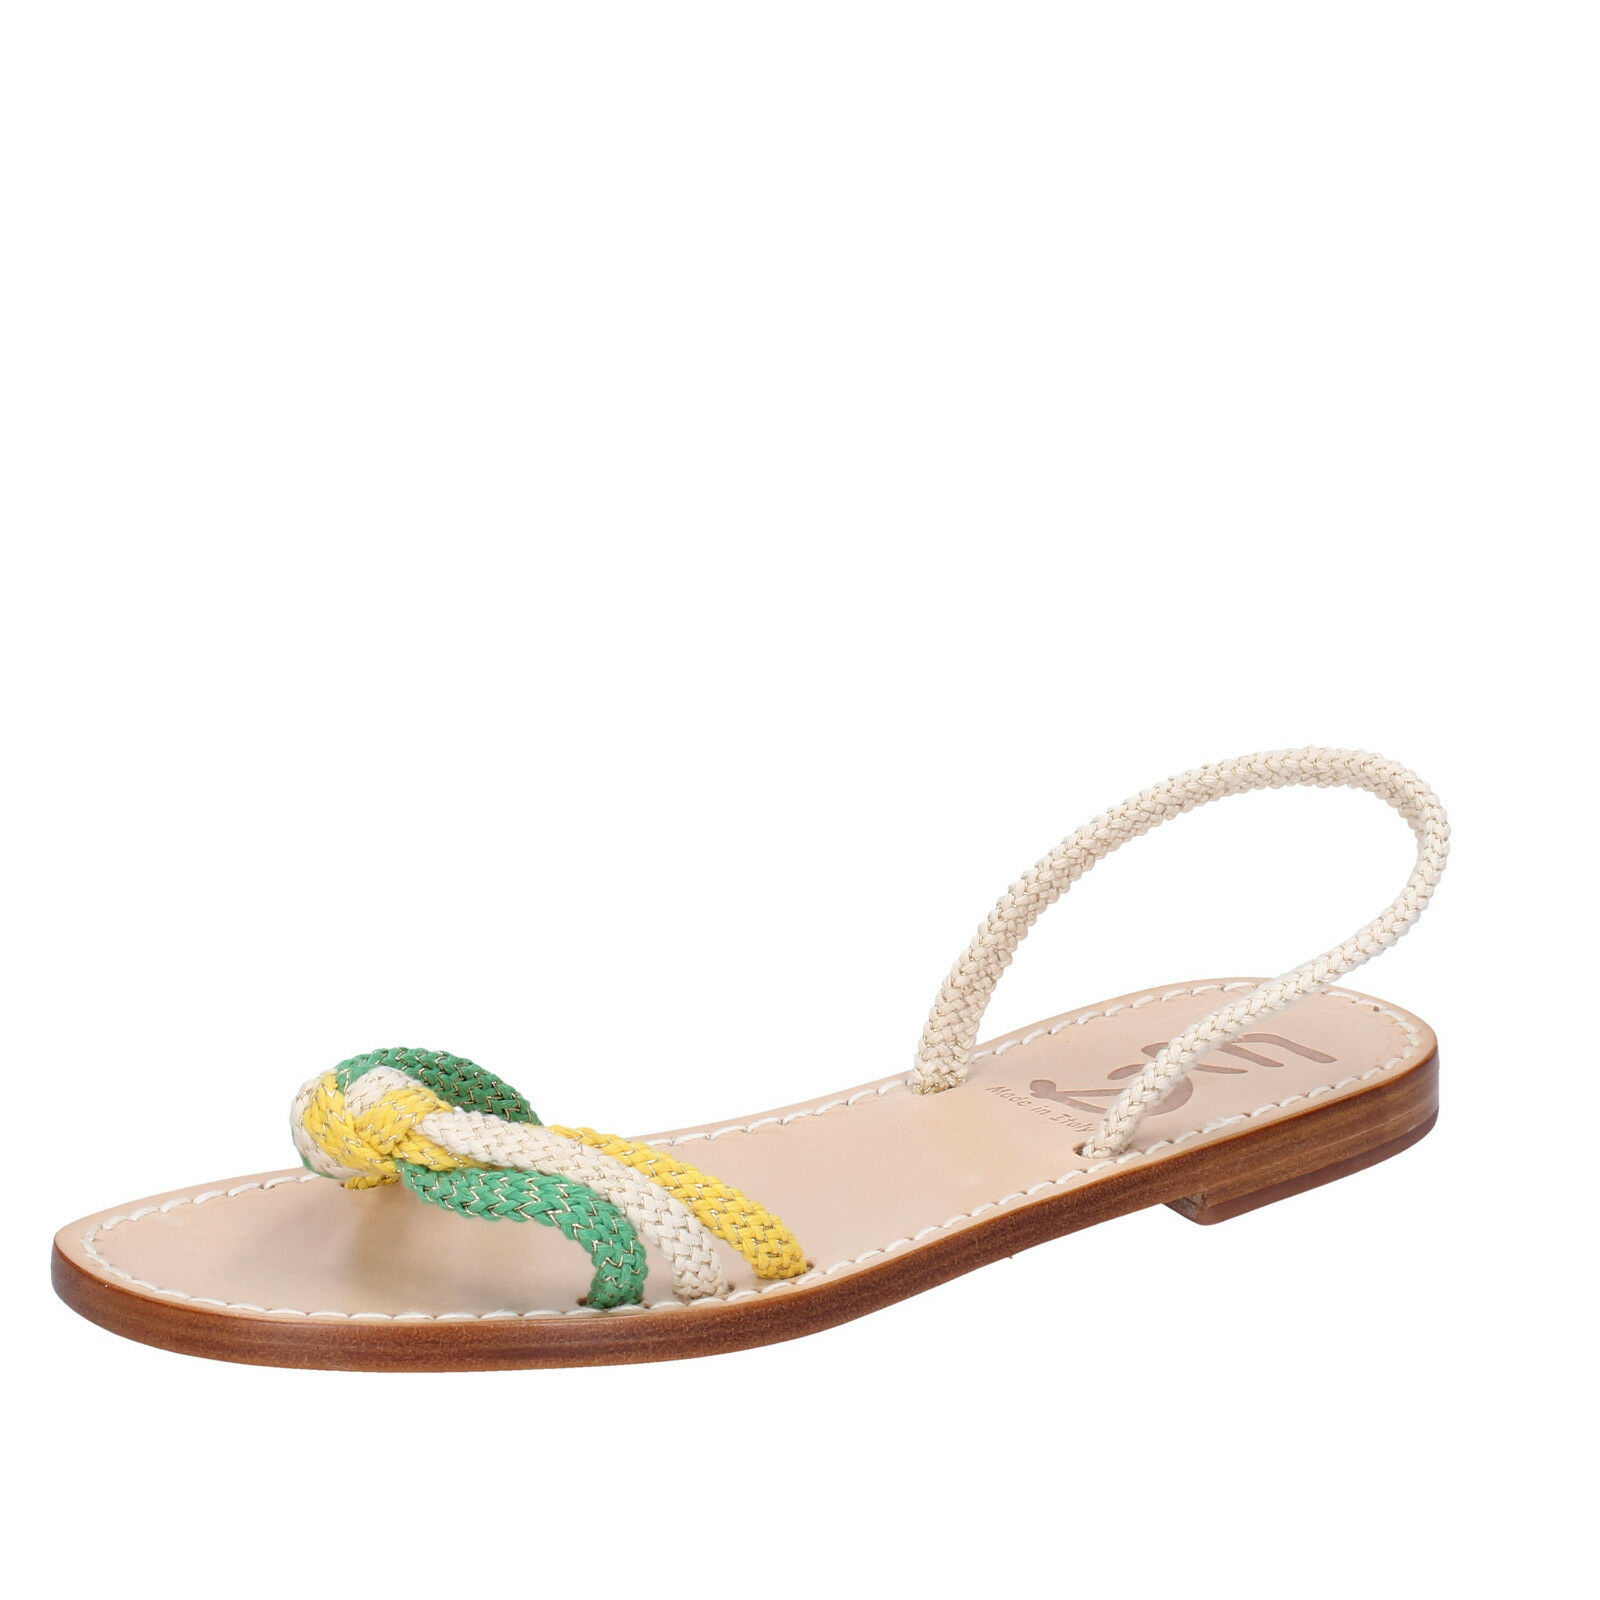 Womens shoes Eddy Daniele 37 EU Sandals White Yellow Green Rope aw470